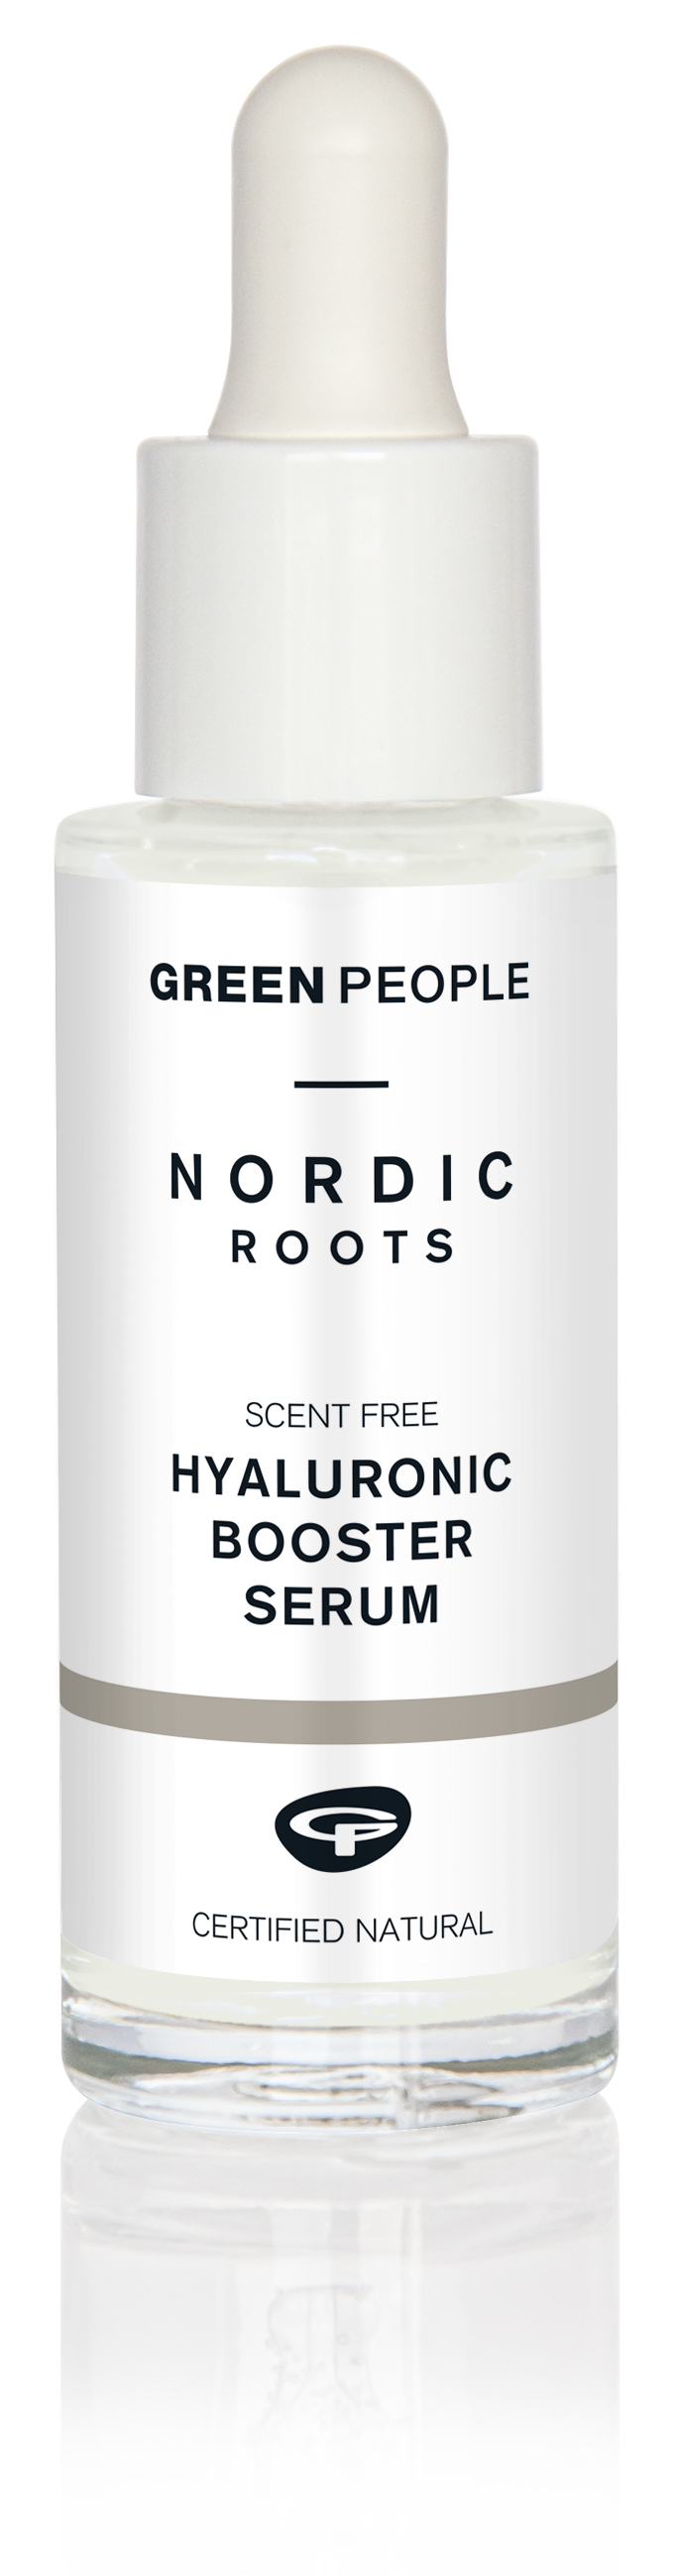 Nordic Roots Hyaluronic Booster Serum 28ml